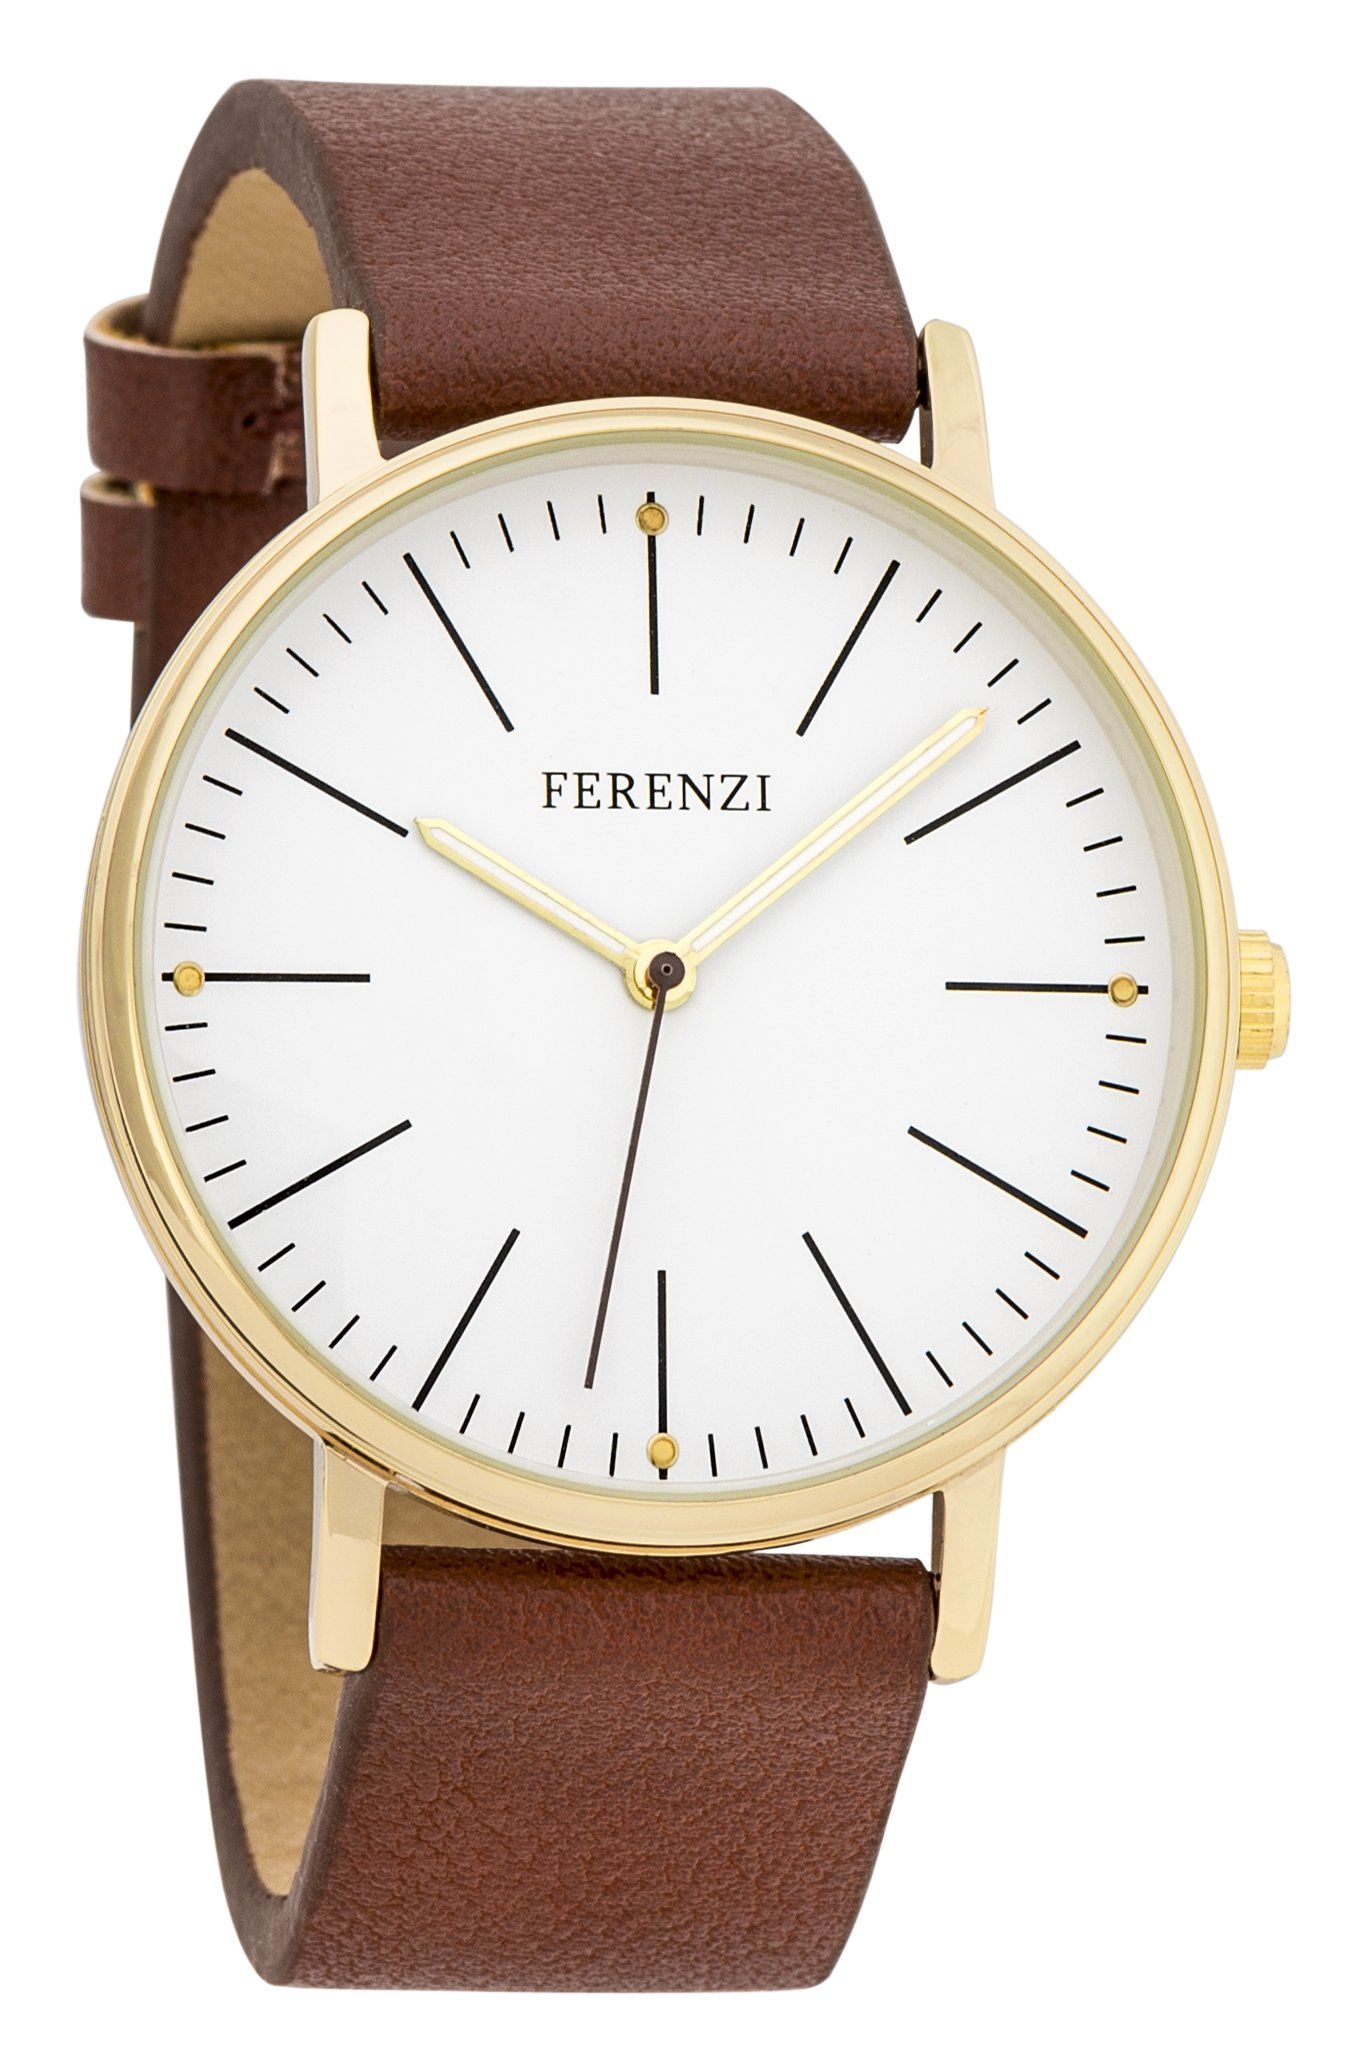 Women's Watches by Ferenzi - Minimalist Gold And Brown PU Leather Watch - Make Every Second Count - FZ17204